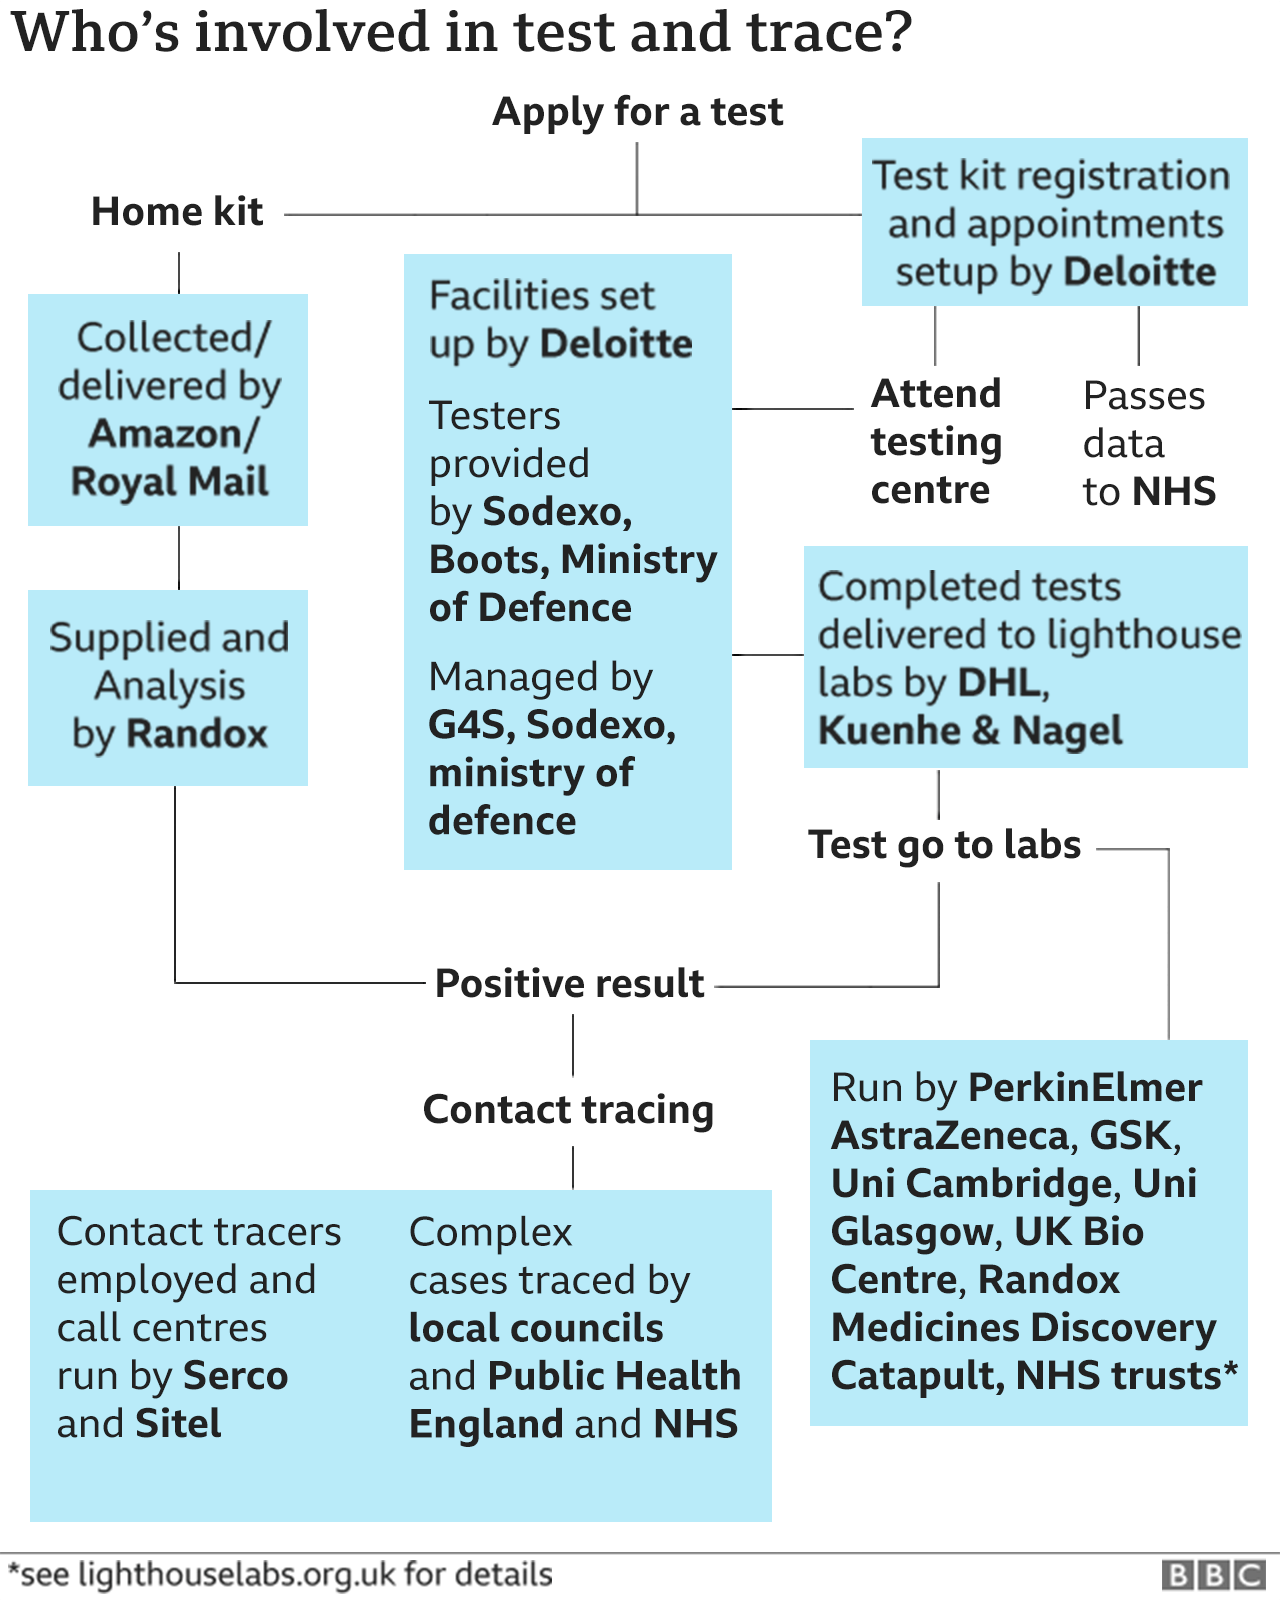 The companies involved in Test and Trace